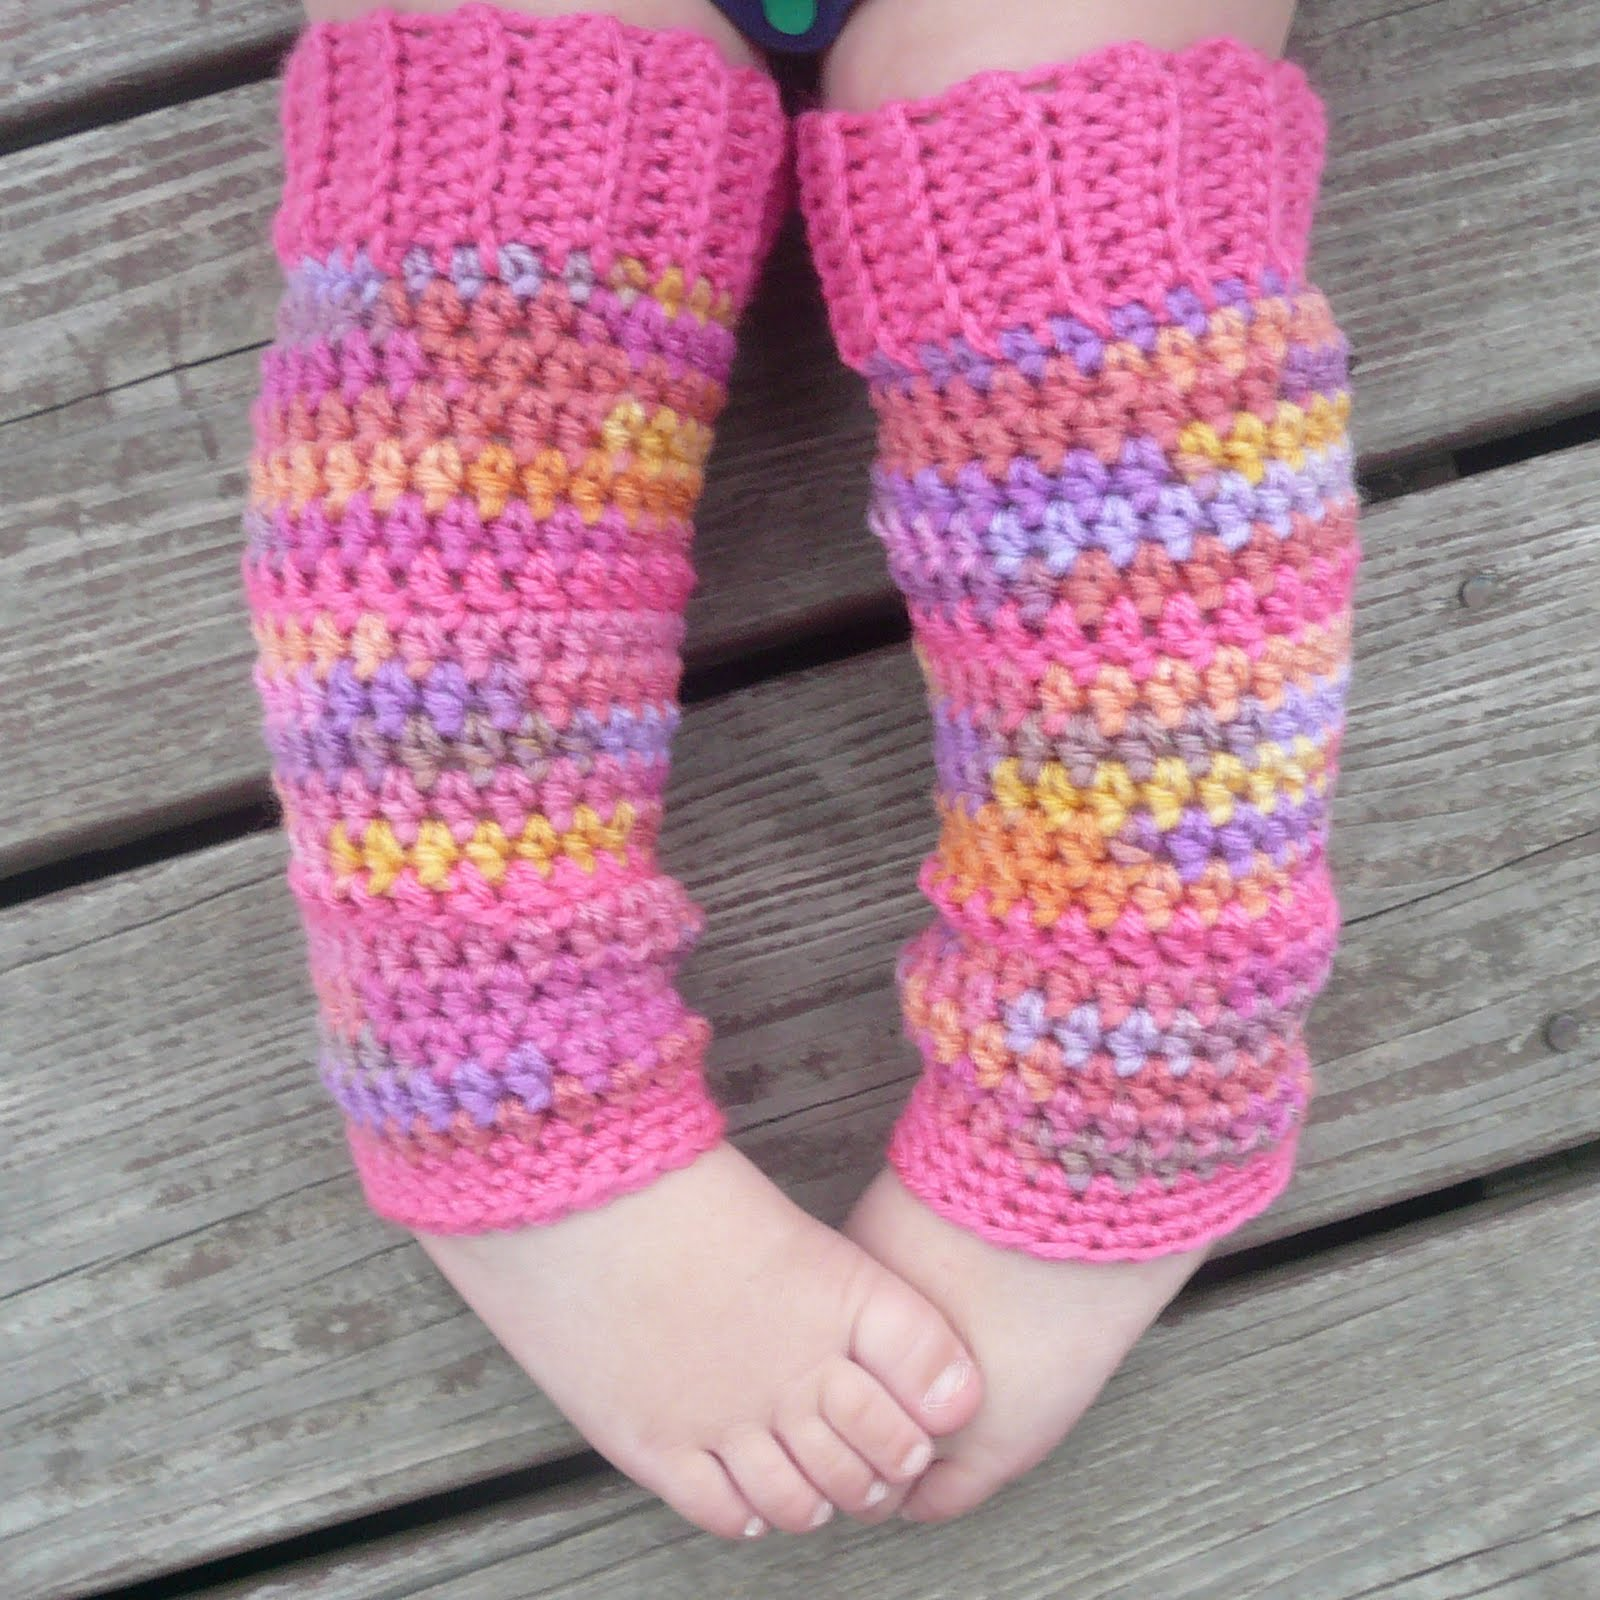 Free Crochet Pattern Leg Warmers Child : Danyel Pink Designs: CROCHET PATTERN - Baby Legwarmers